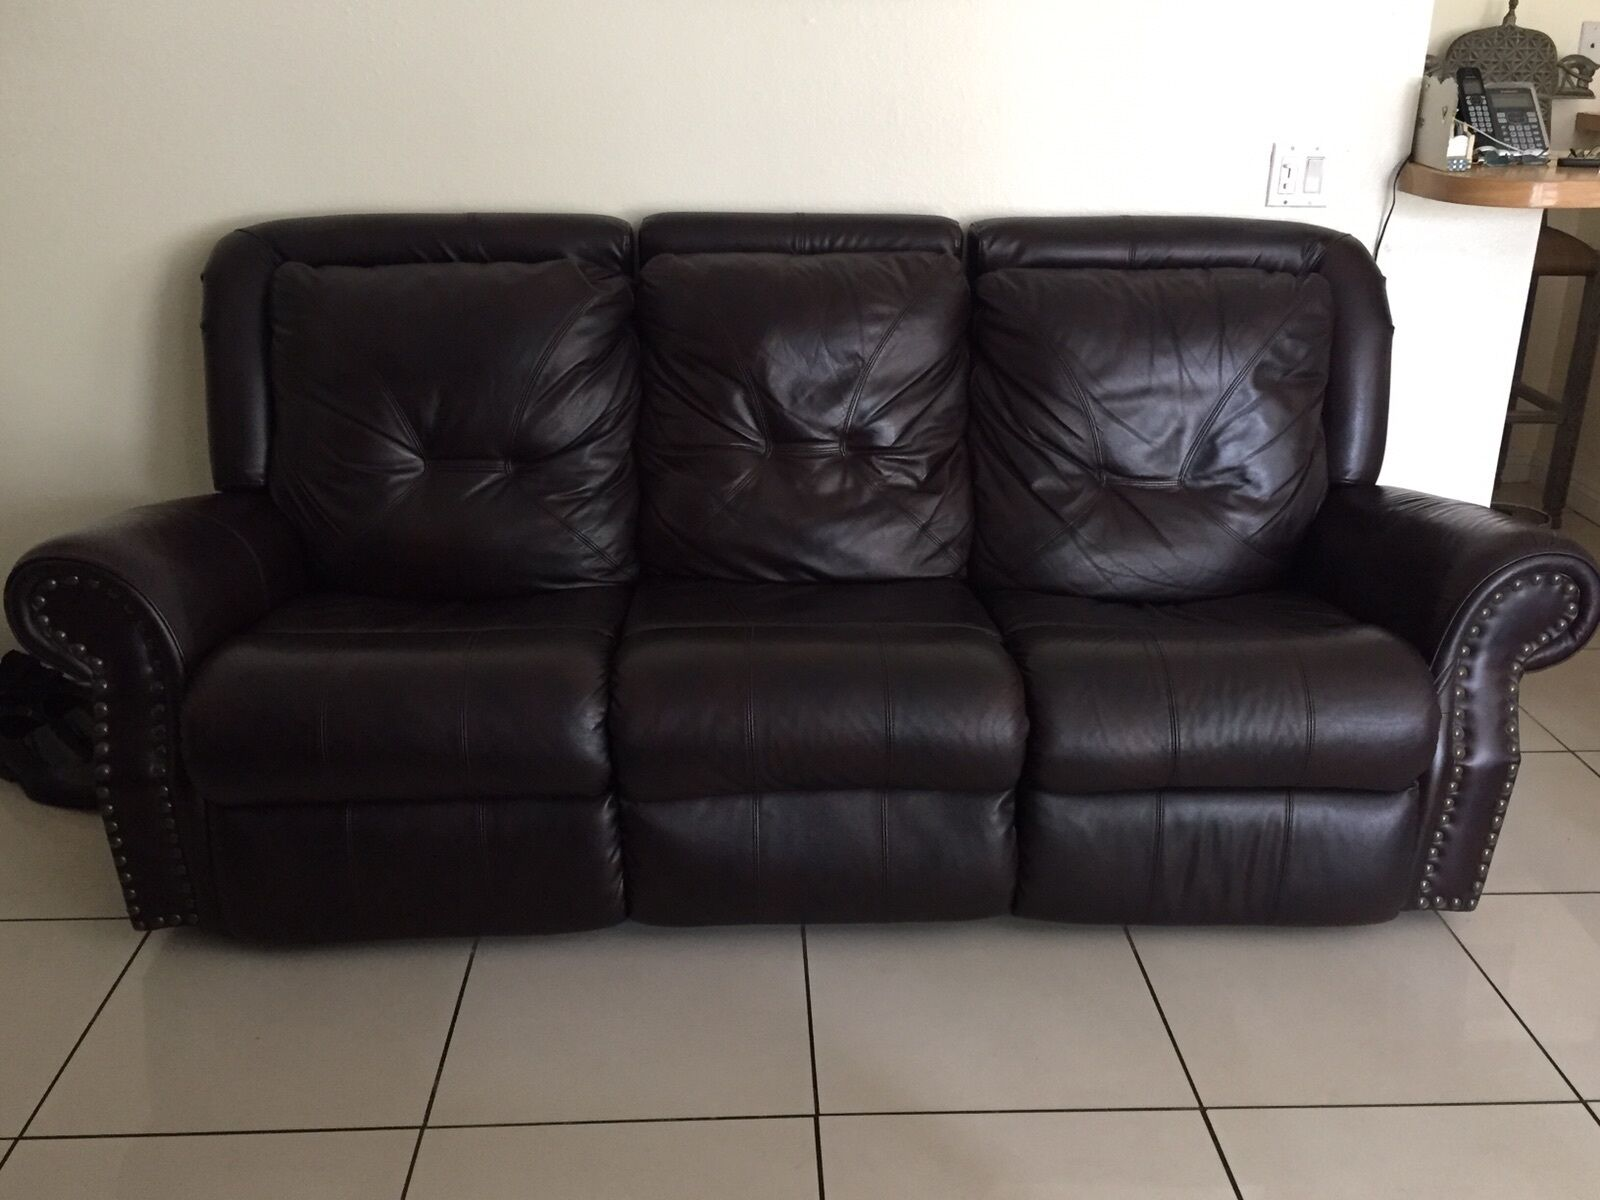 Dark Burgundy Brown Italian Leather Reclining Loveseat And Sofa Set No Chair